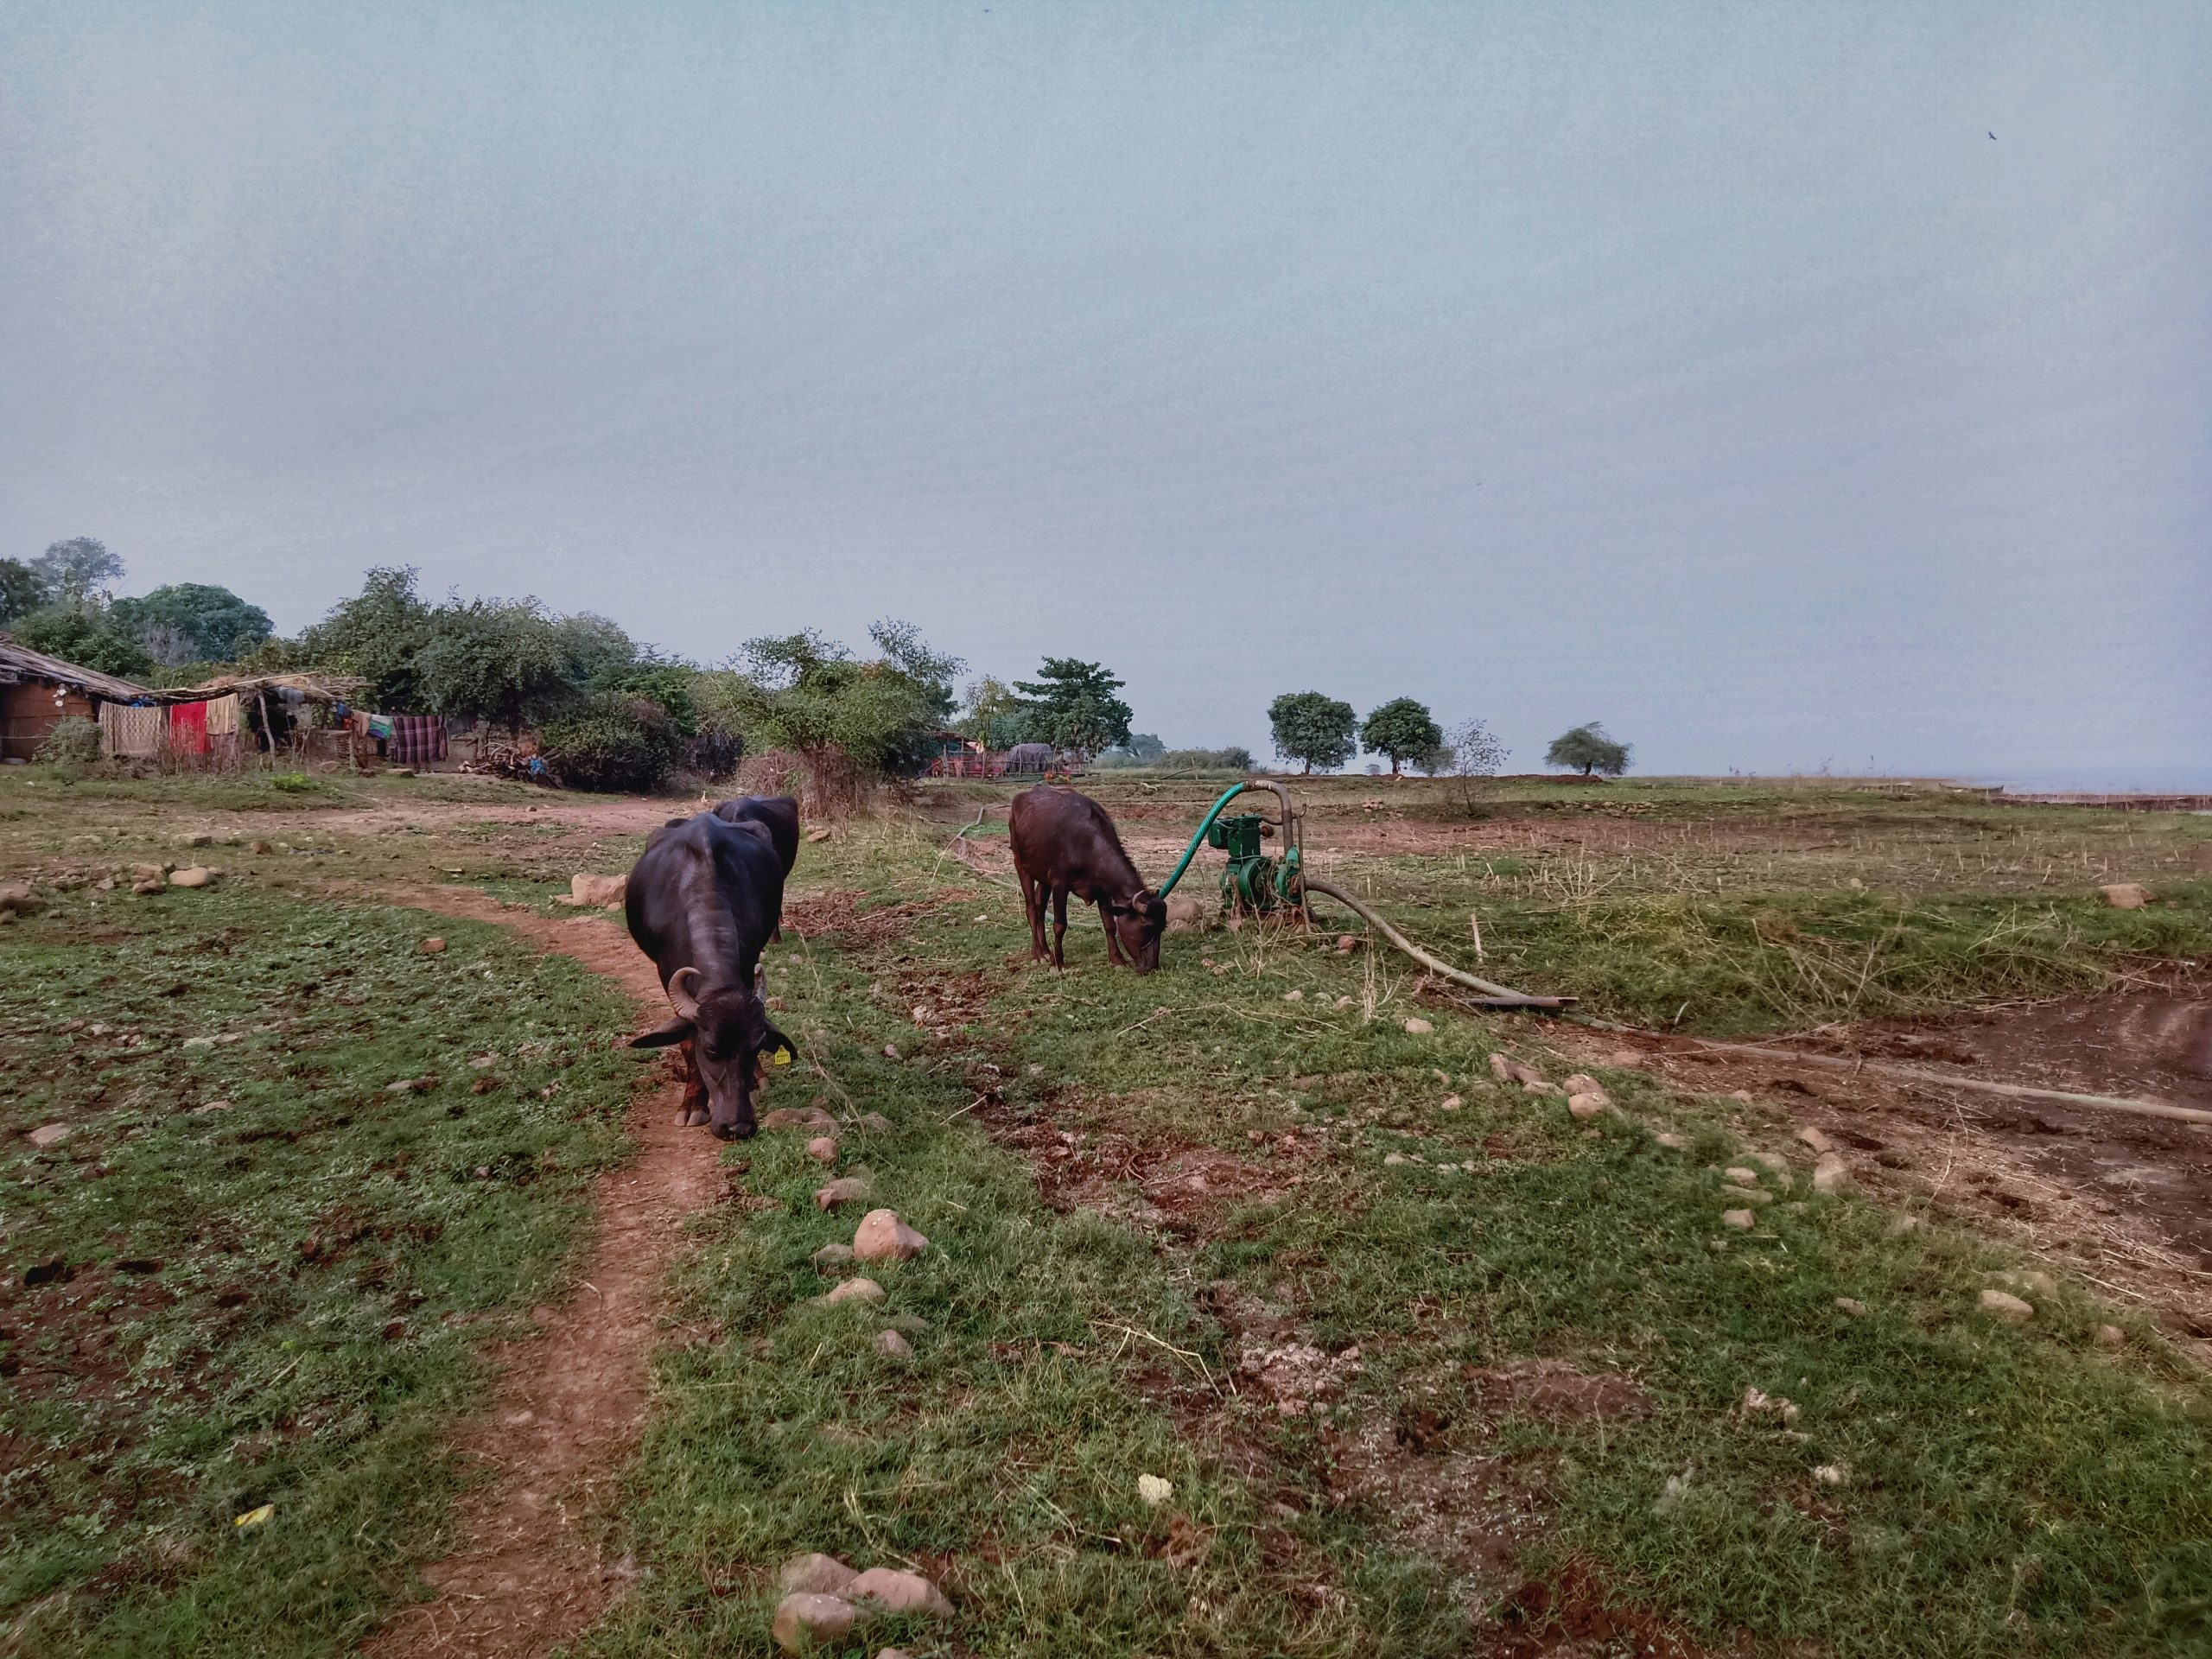 Buffaloes grazing in a village